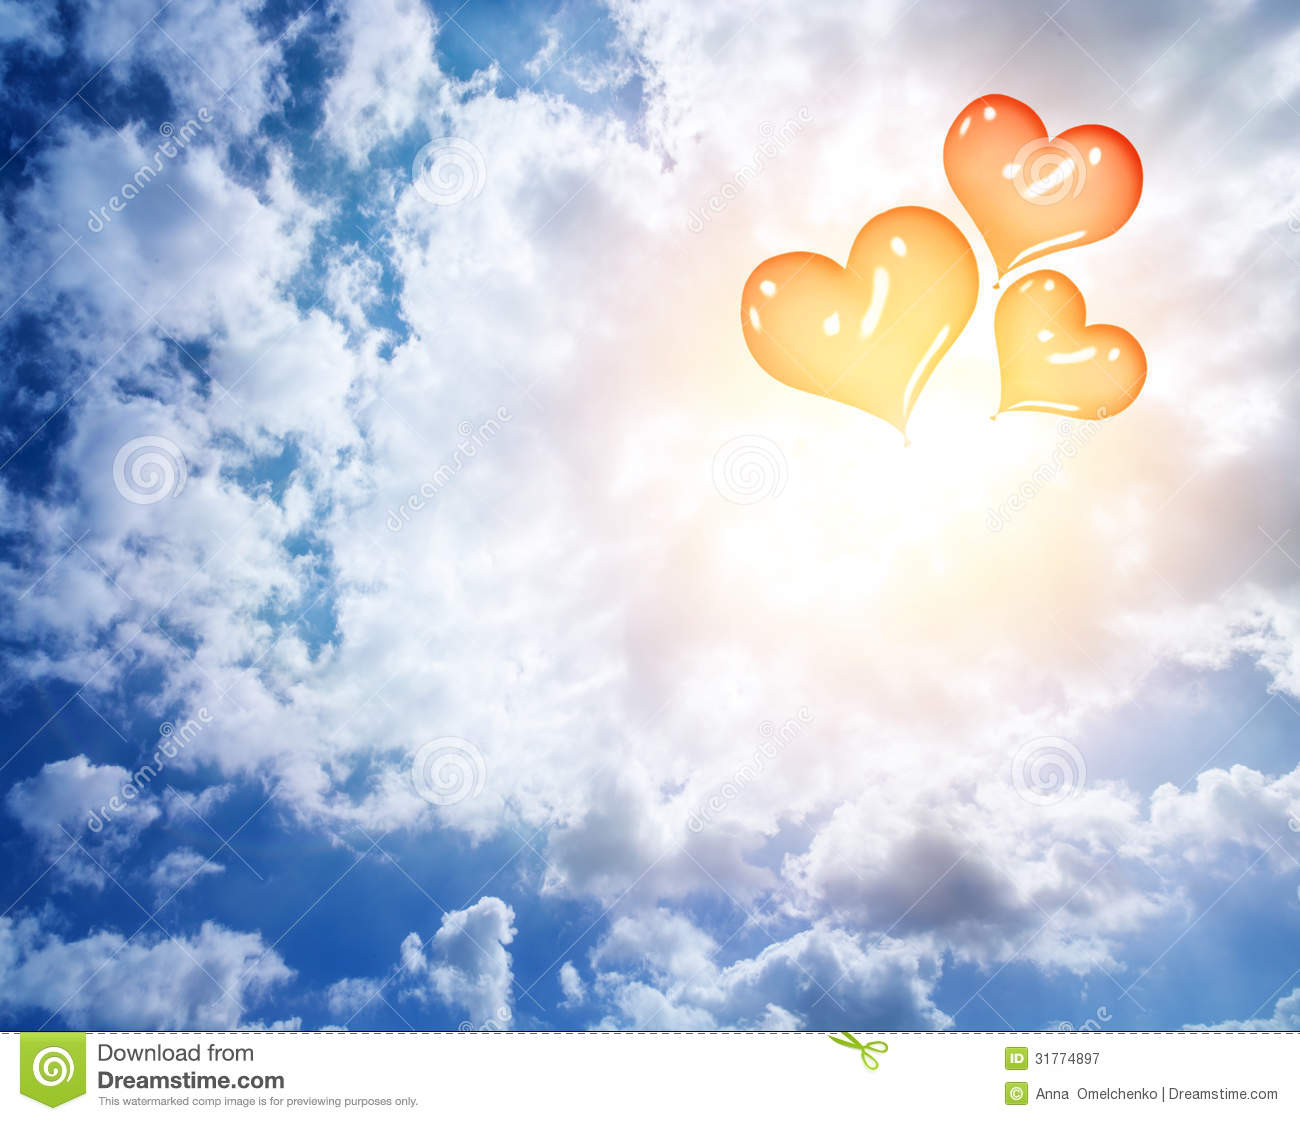 Good Luck Quotes Images Messages Wishes Sms besides Good Marks Assembly 5 furthermore Pastor Mikes Blog additionally Services Audio together with Stock Illustration Sign One New Man Designed Using Gold Color Logo Symbol Icon Graphic Vector Image58077055. on god will light shine